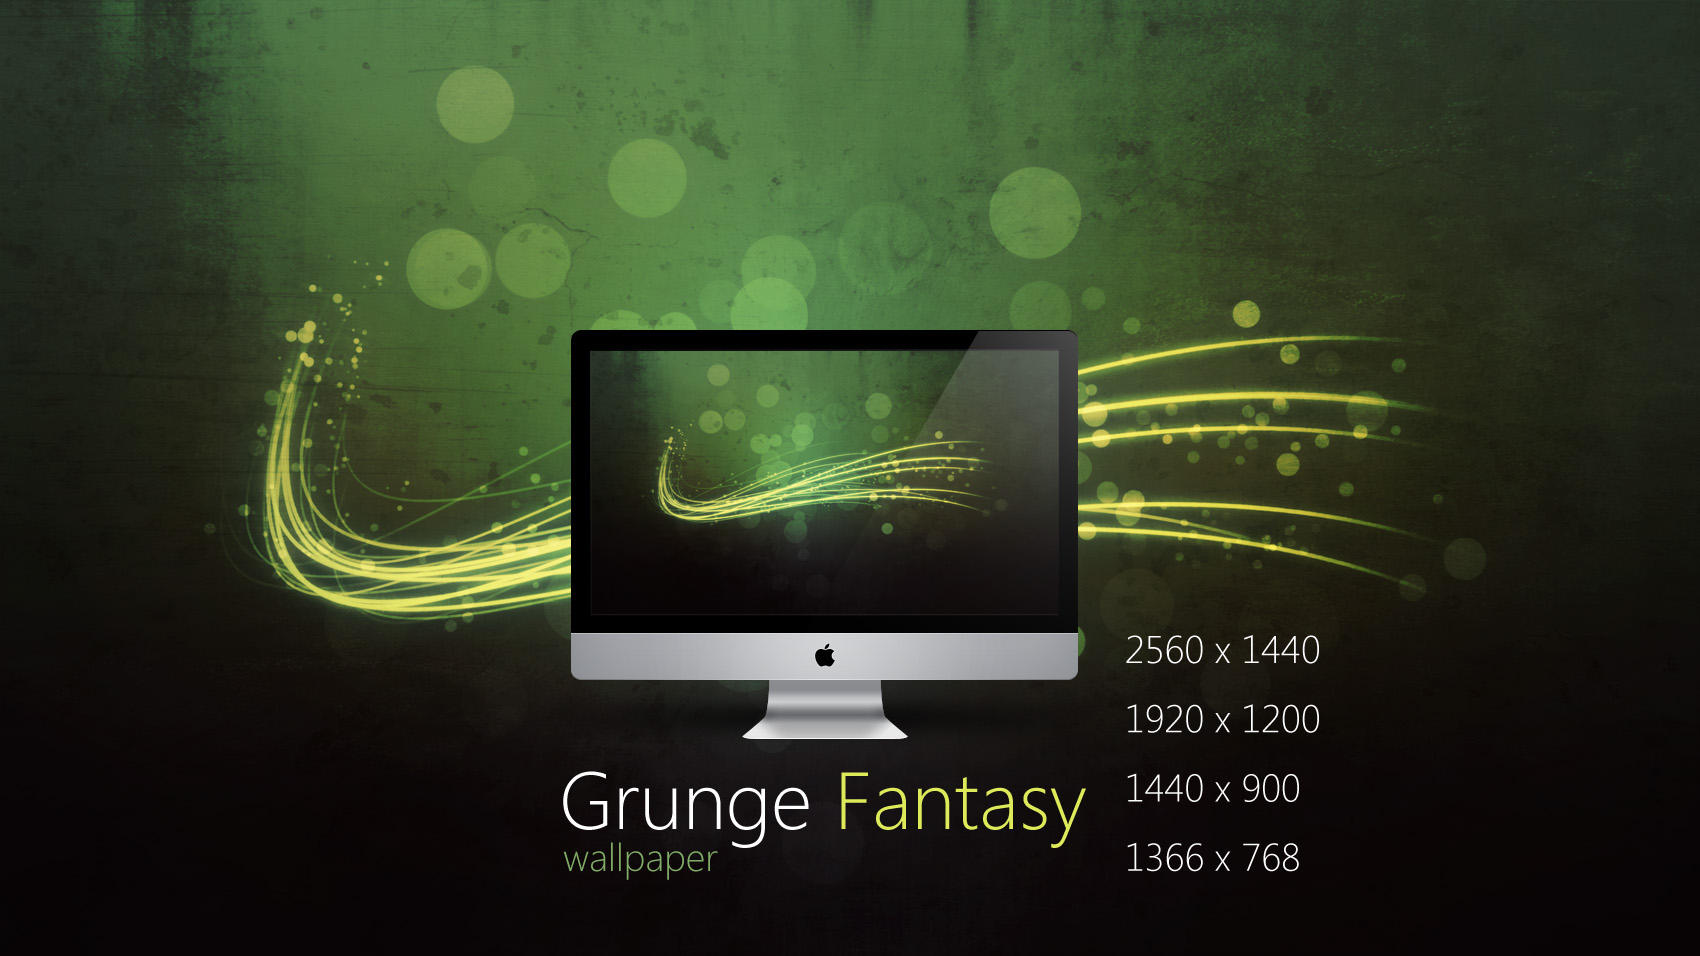 Grunge Fantasy Wallpaper by Martz90